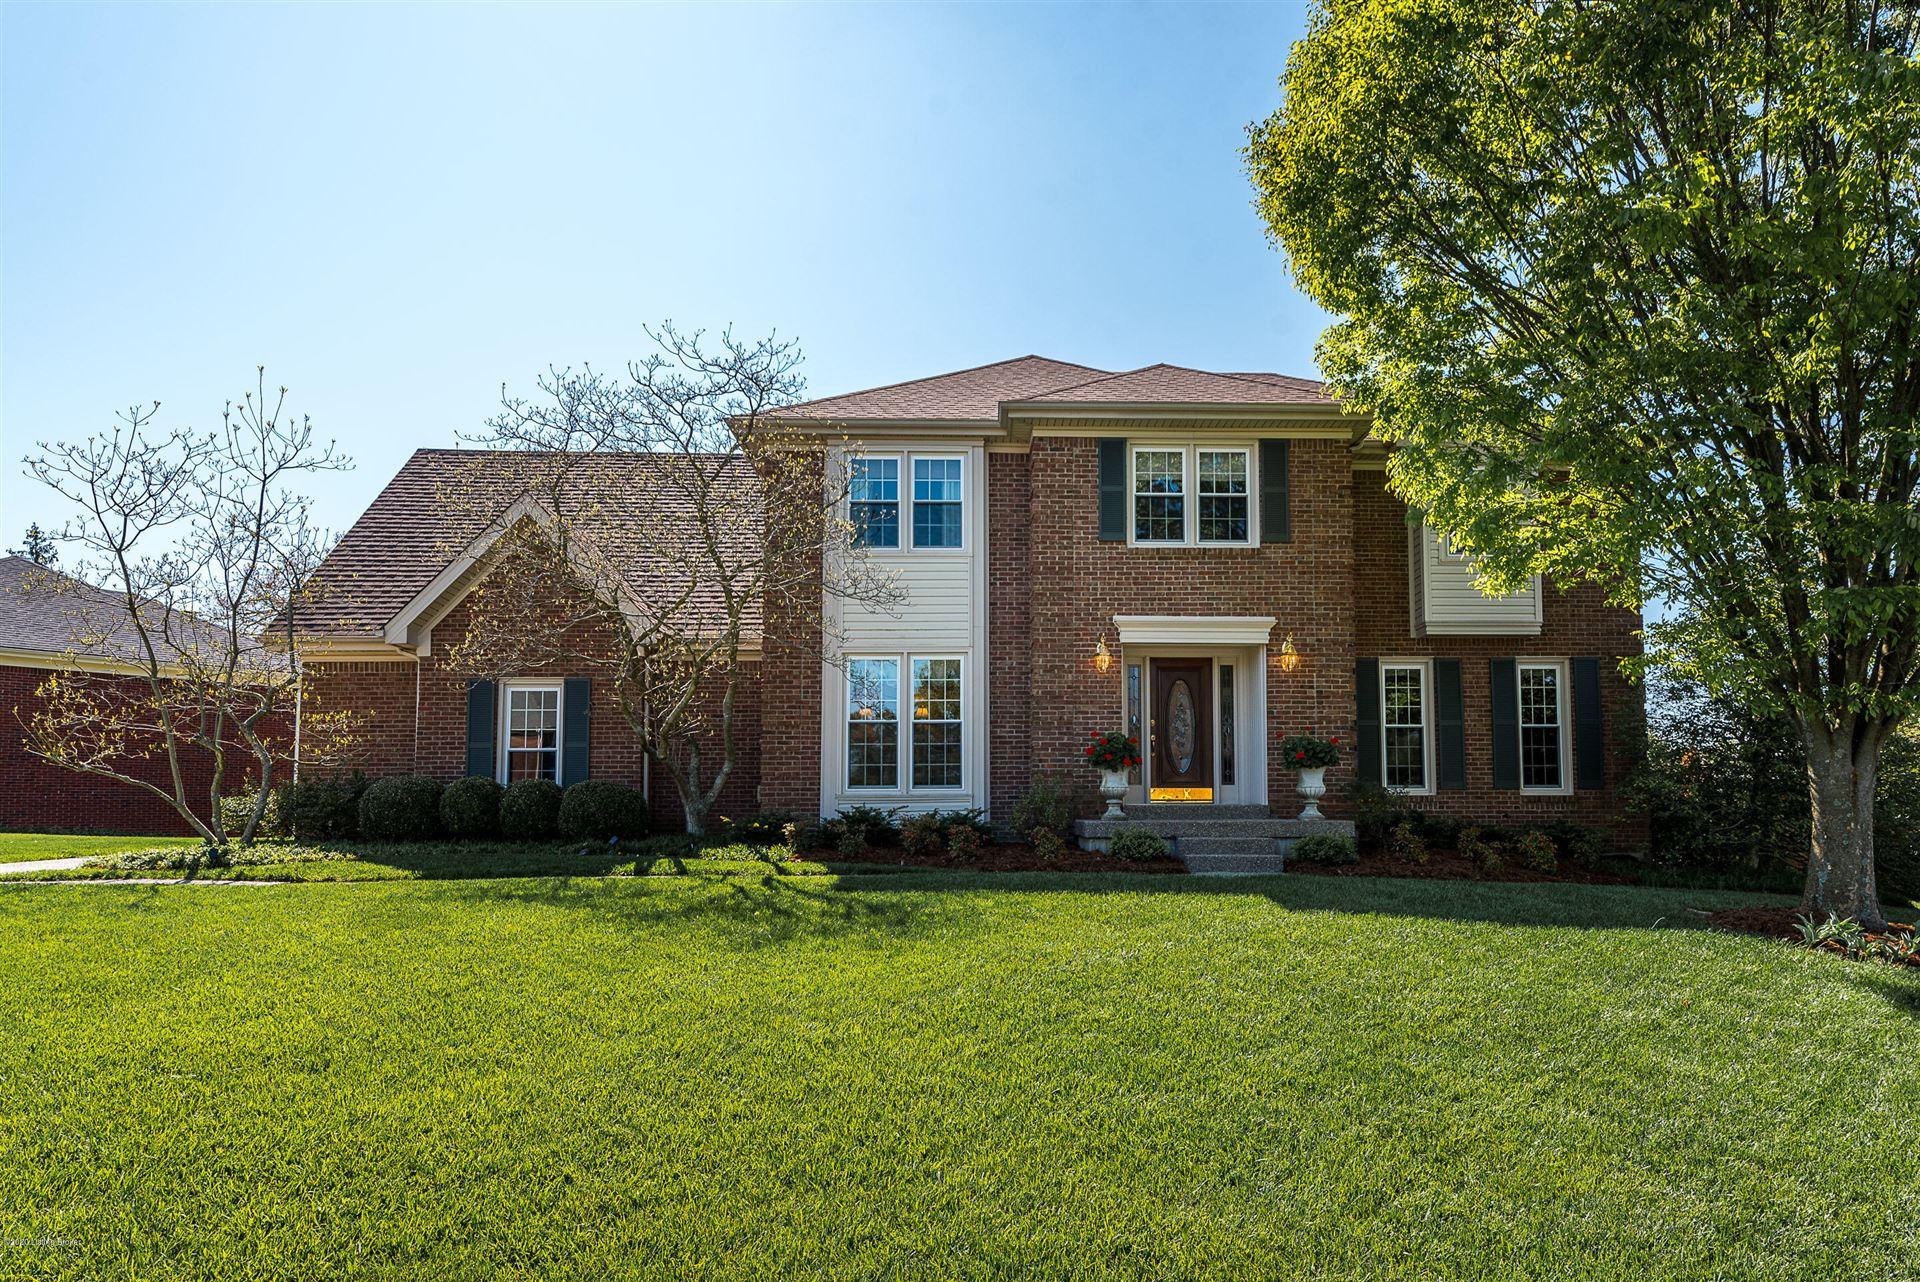 Property Image Of 908 Brierly Hill Ct In Louisville, Ky